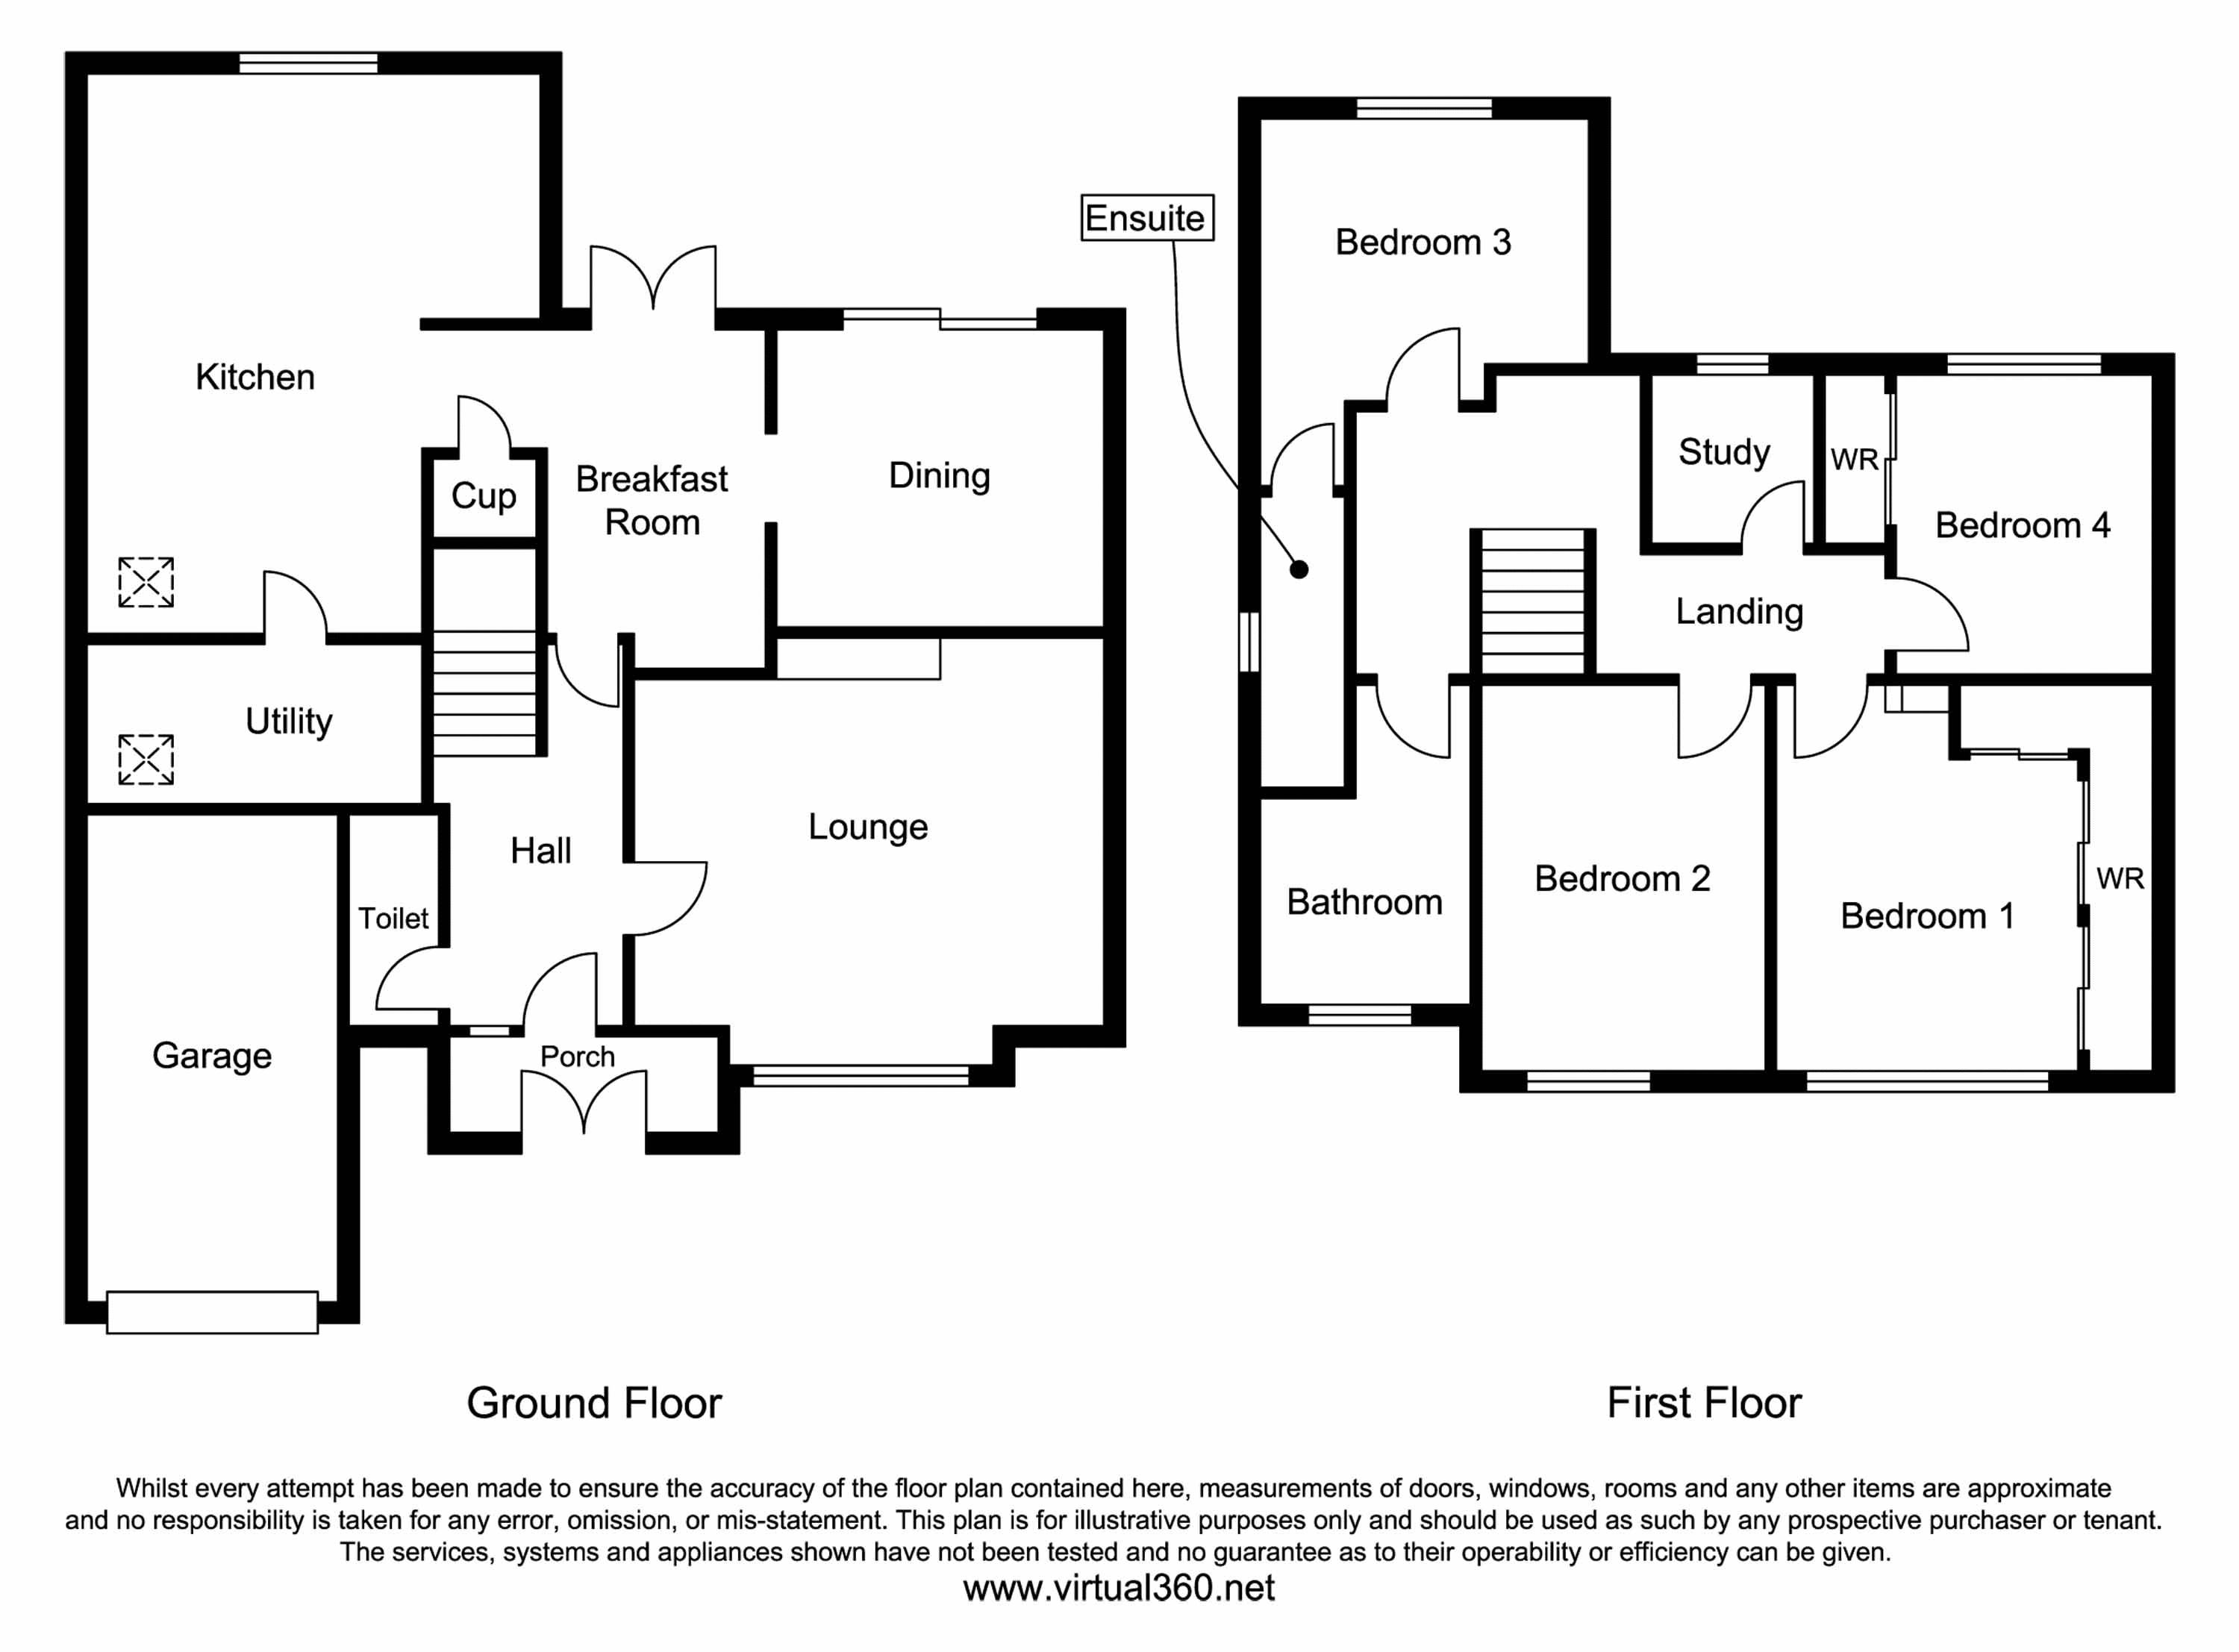 Berkswell Close, Solihull floor plan